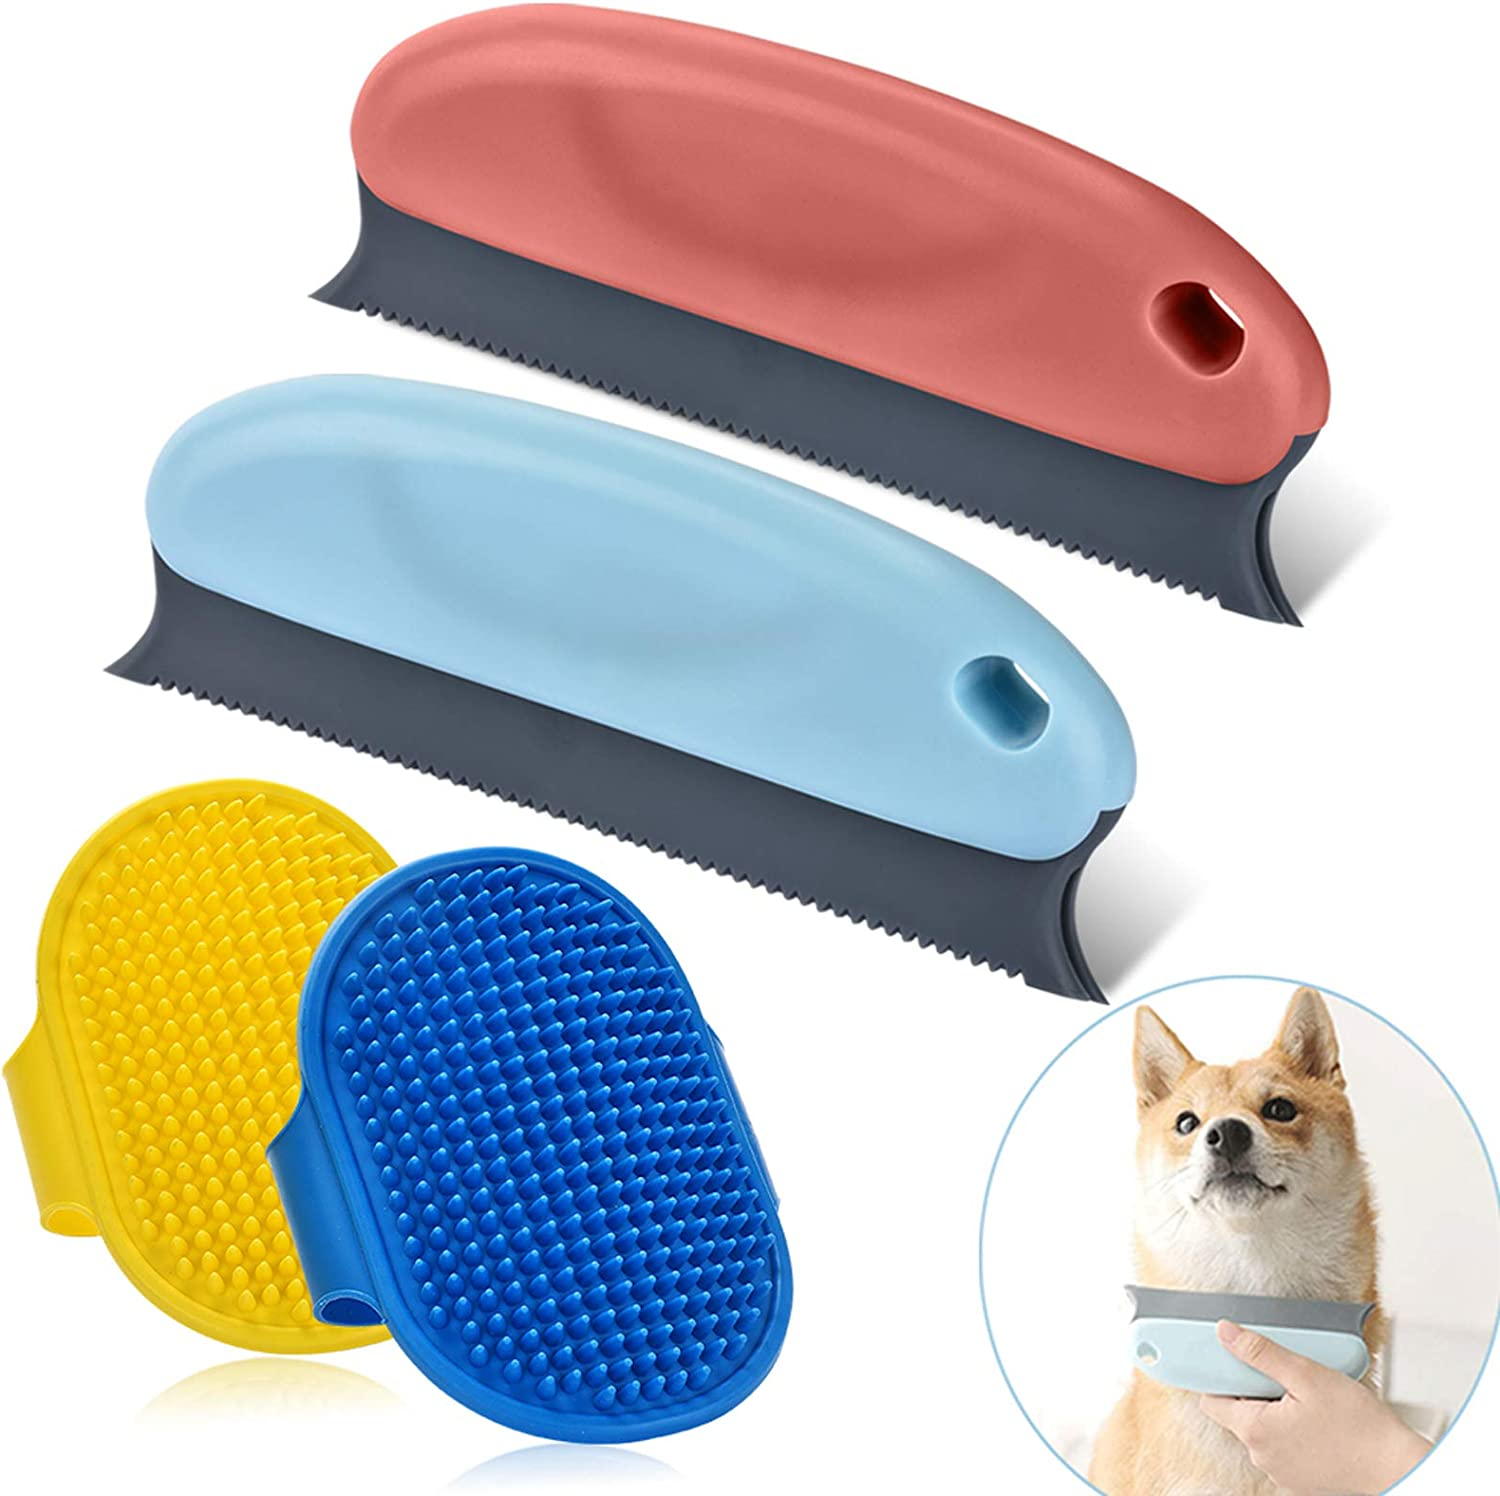 4PCS Premium Pet Hair Remover for Couch, Cat & Dog Hair Remover Set, Professional Pet Hair Remover Brush Comb for Cleaning Carpets, Sofa, Furniture and Car Interiors + 2 Dog Grooming Brushes